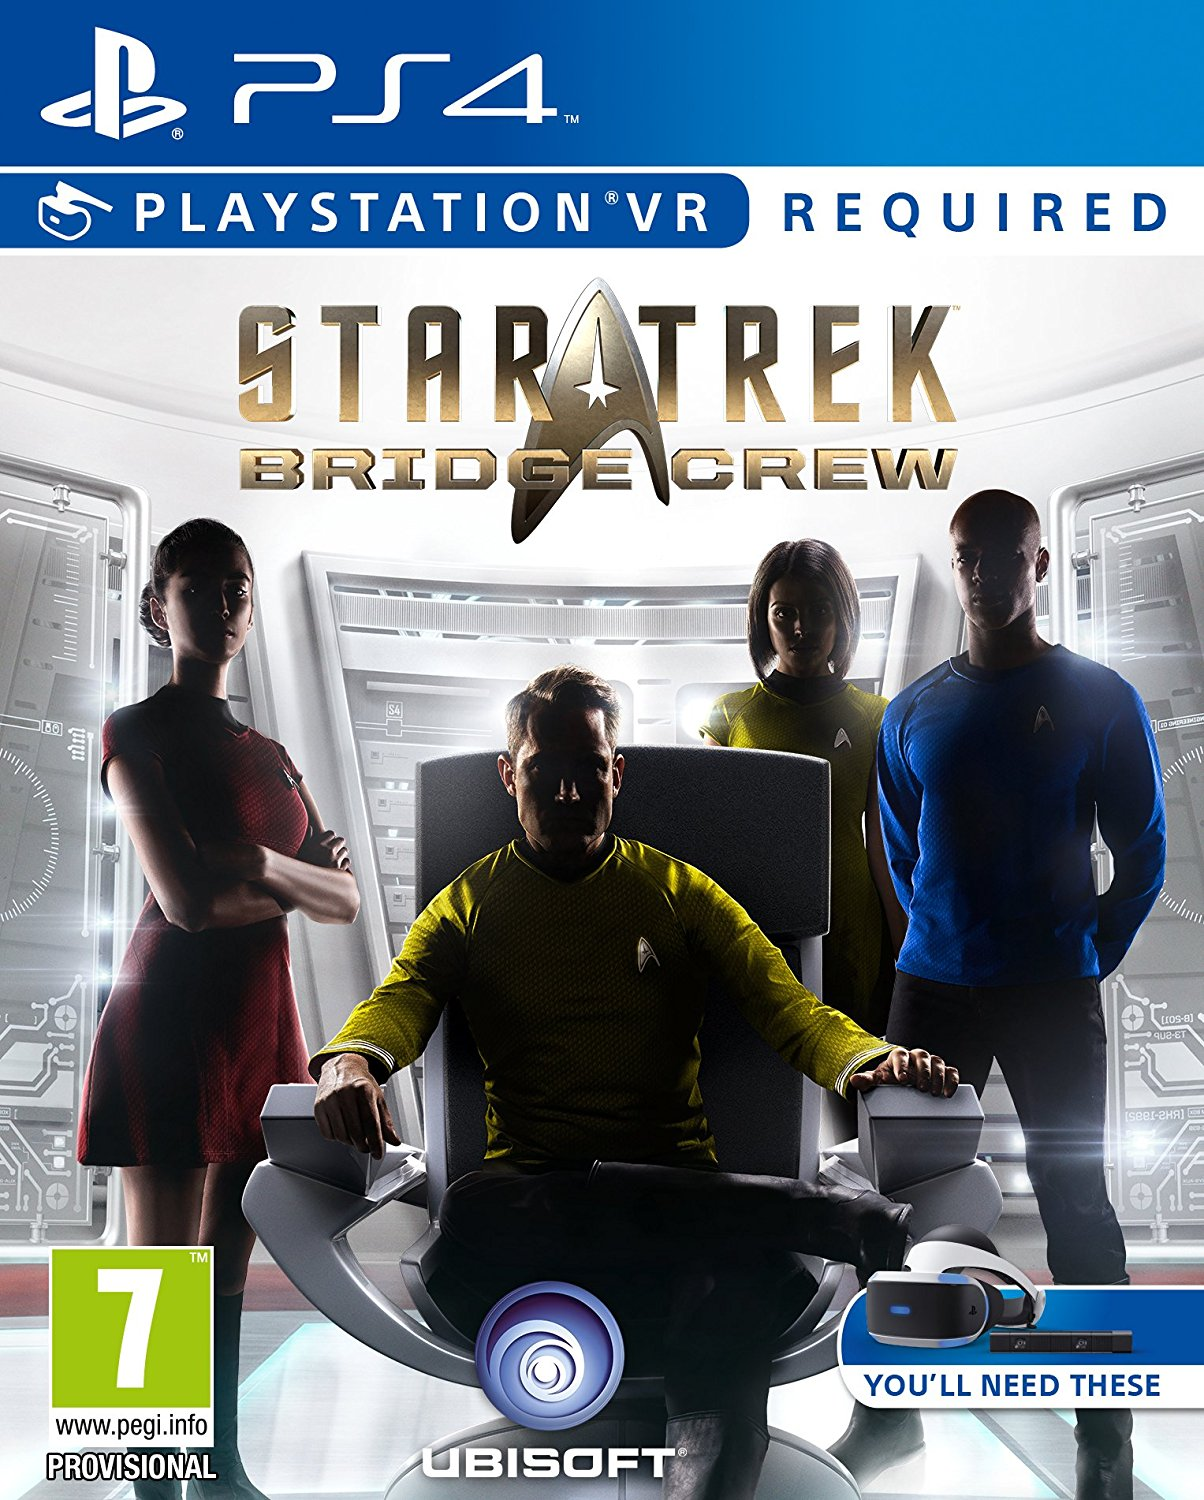 star-trek-bridge-crew-ps4--playstation-vr--ps4-box.jpg